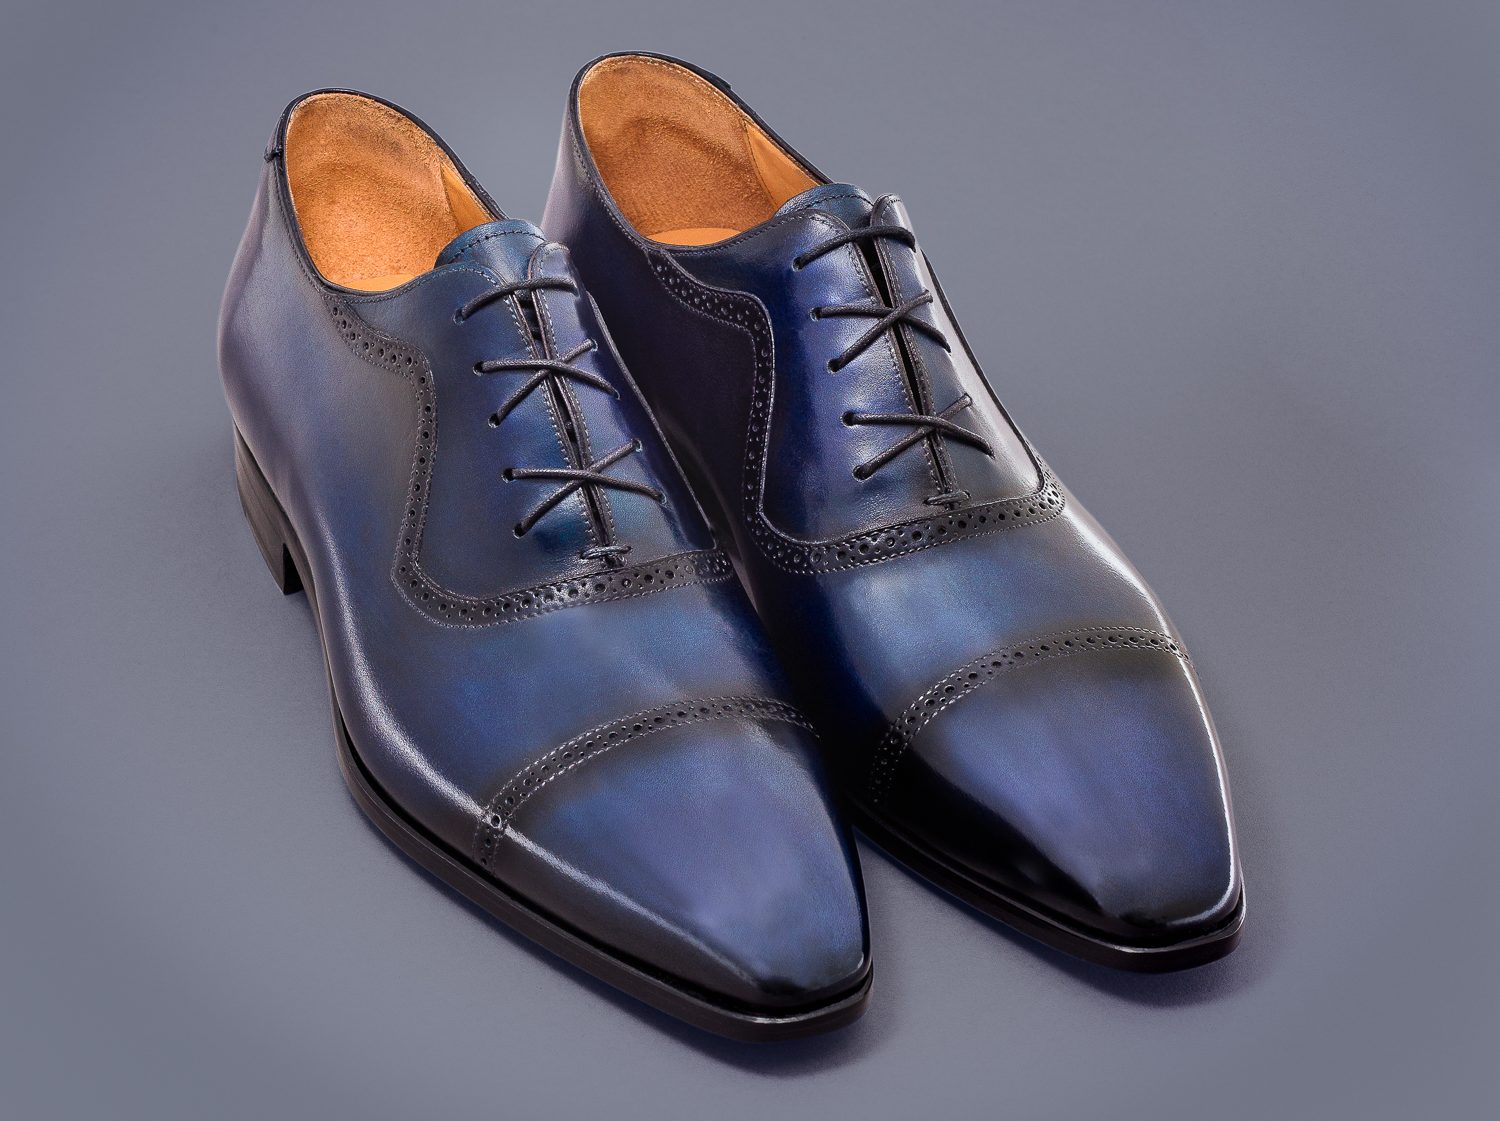 Best Dress Shoes For Men 2019 | Altan Bottier Pierrot Night Blue Oxford